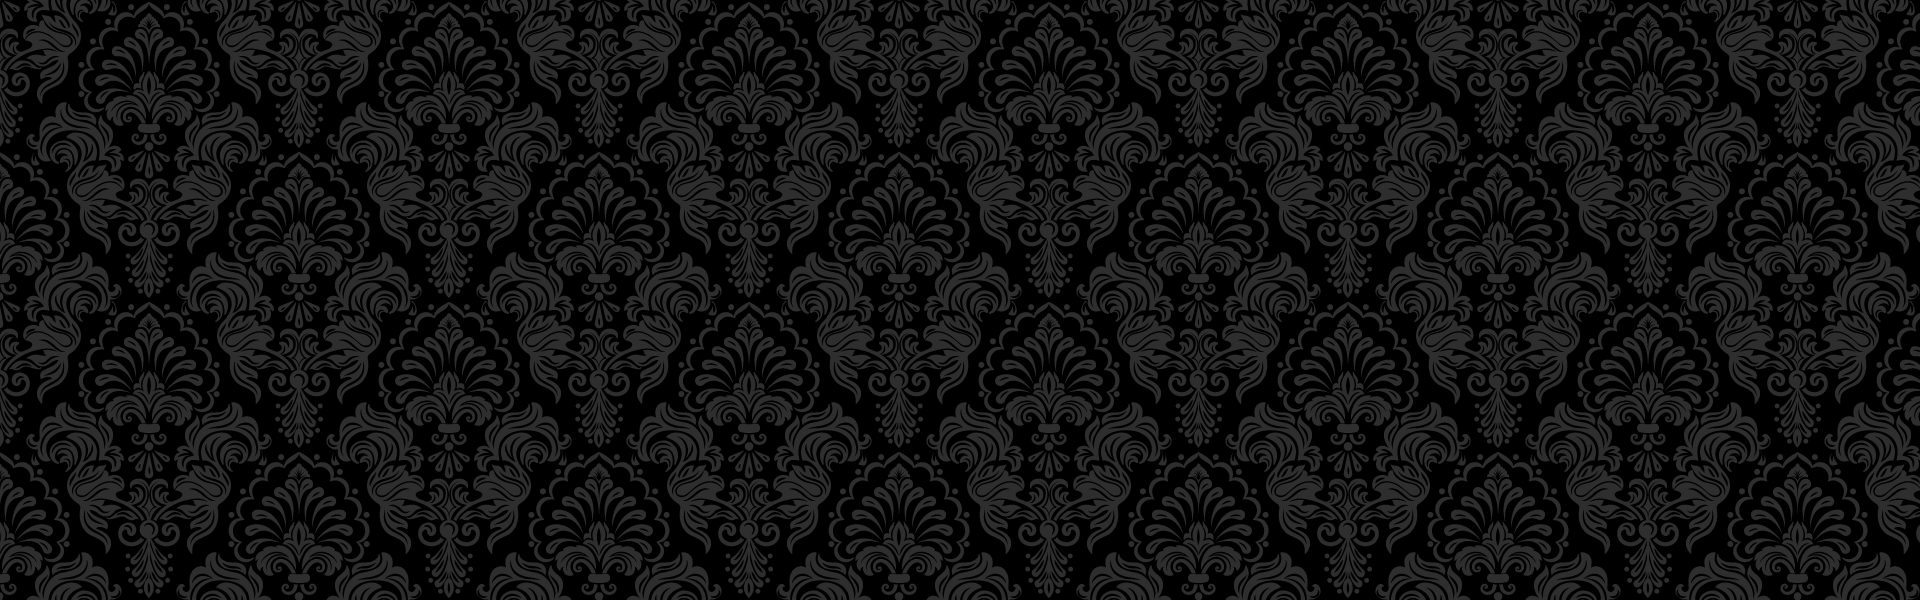 damask-black-bkg